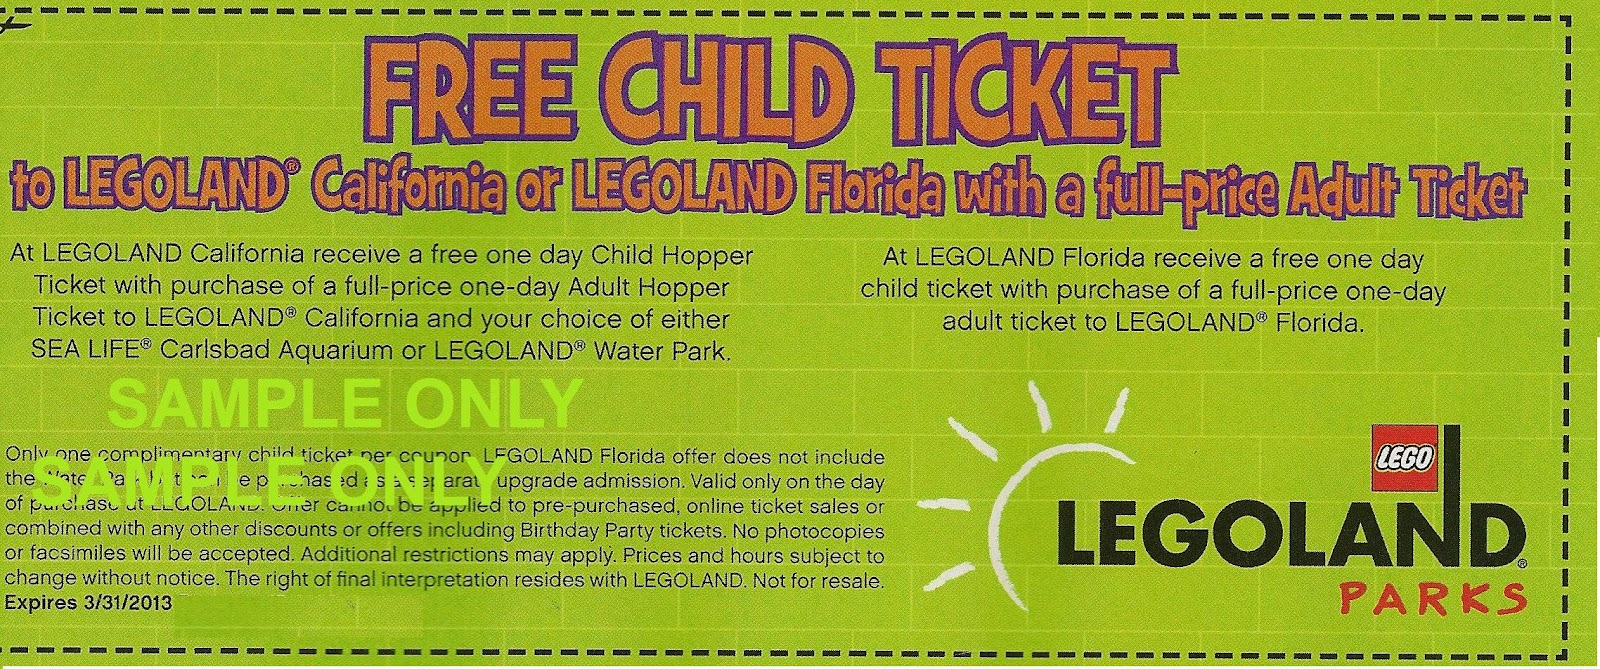 photo relating to Legoland Printable Coupons known as Legoland little one free of charge coupon : Otterbox galaxy s4 display screen protector